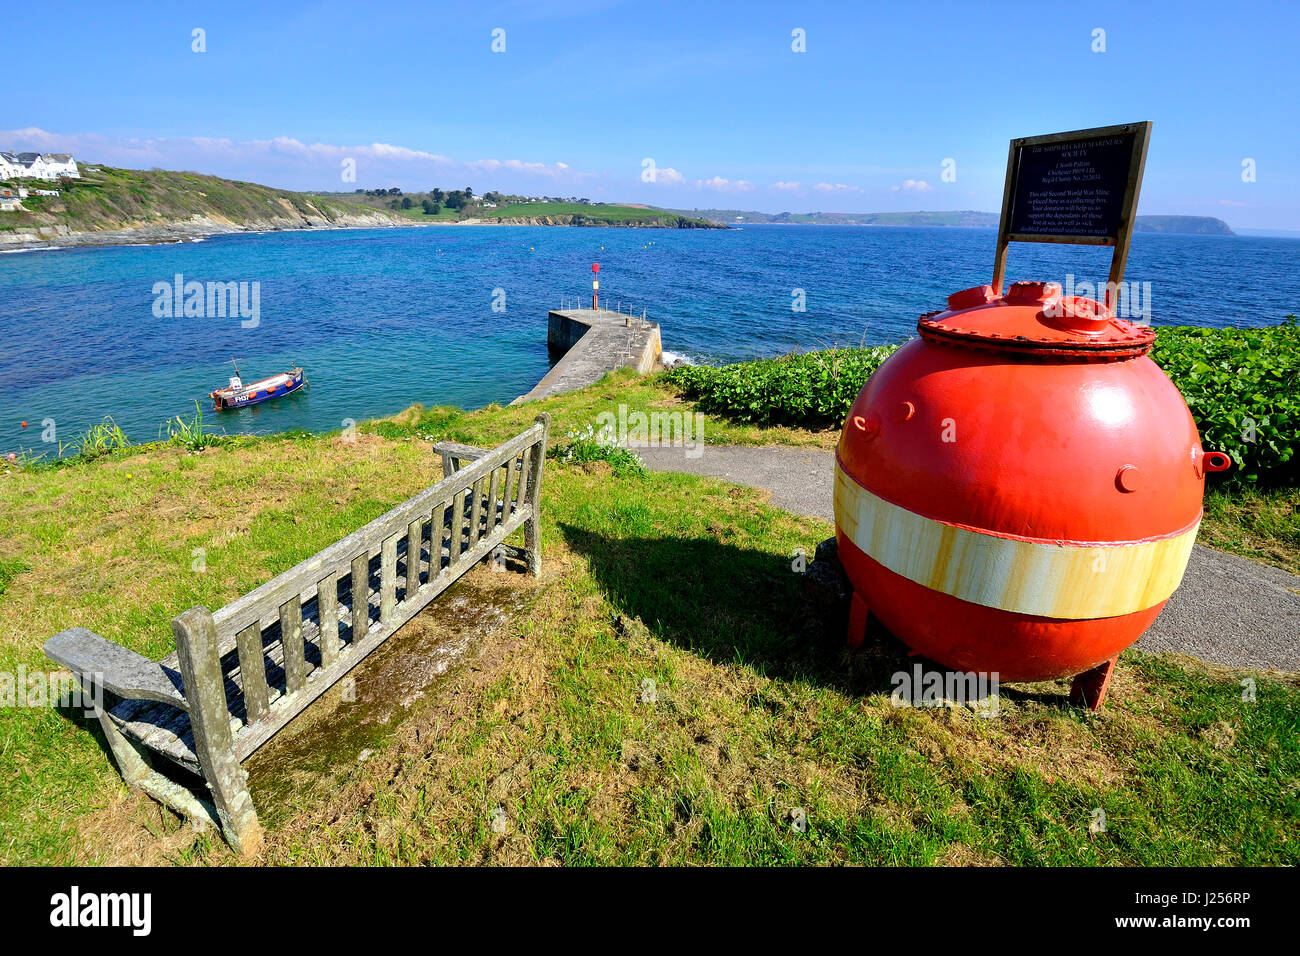 View of the harbour at the seaside holiday resort of Portscatho on the Roseland Peninsula, Cornwall, England, UK Stock Photo